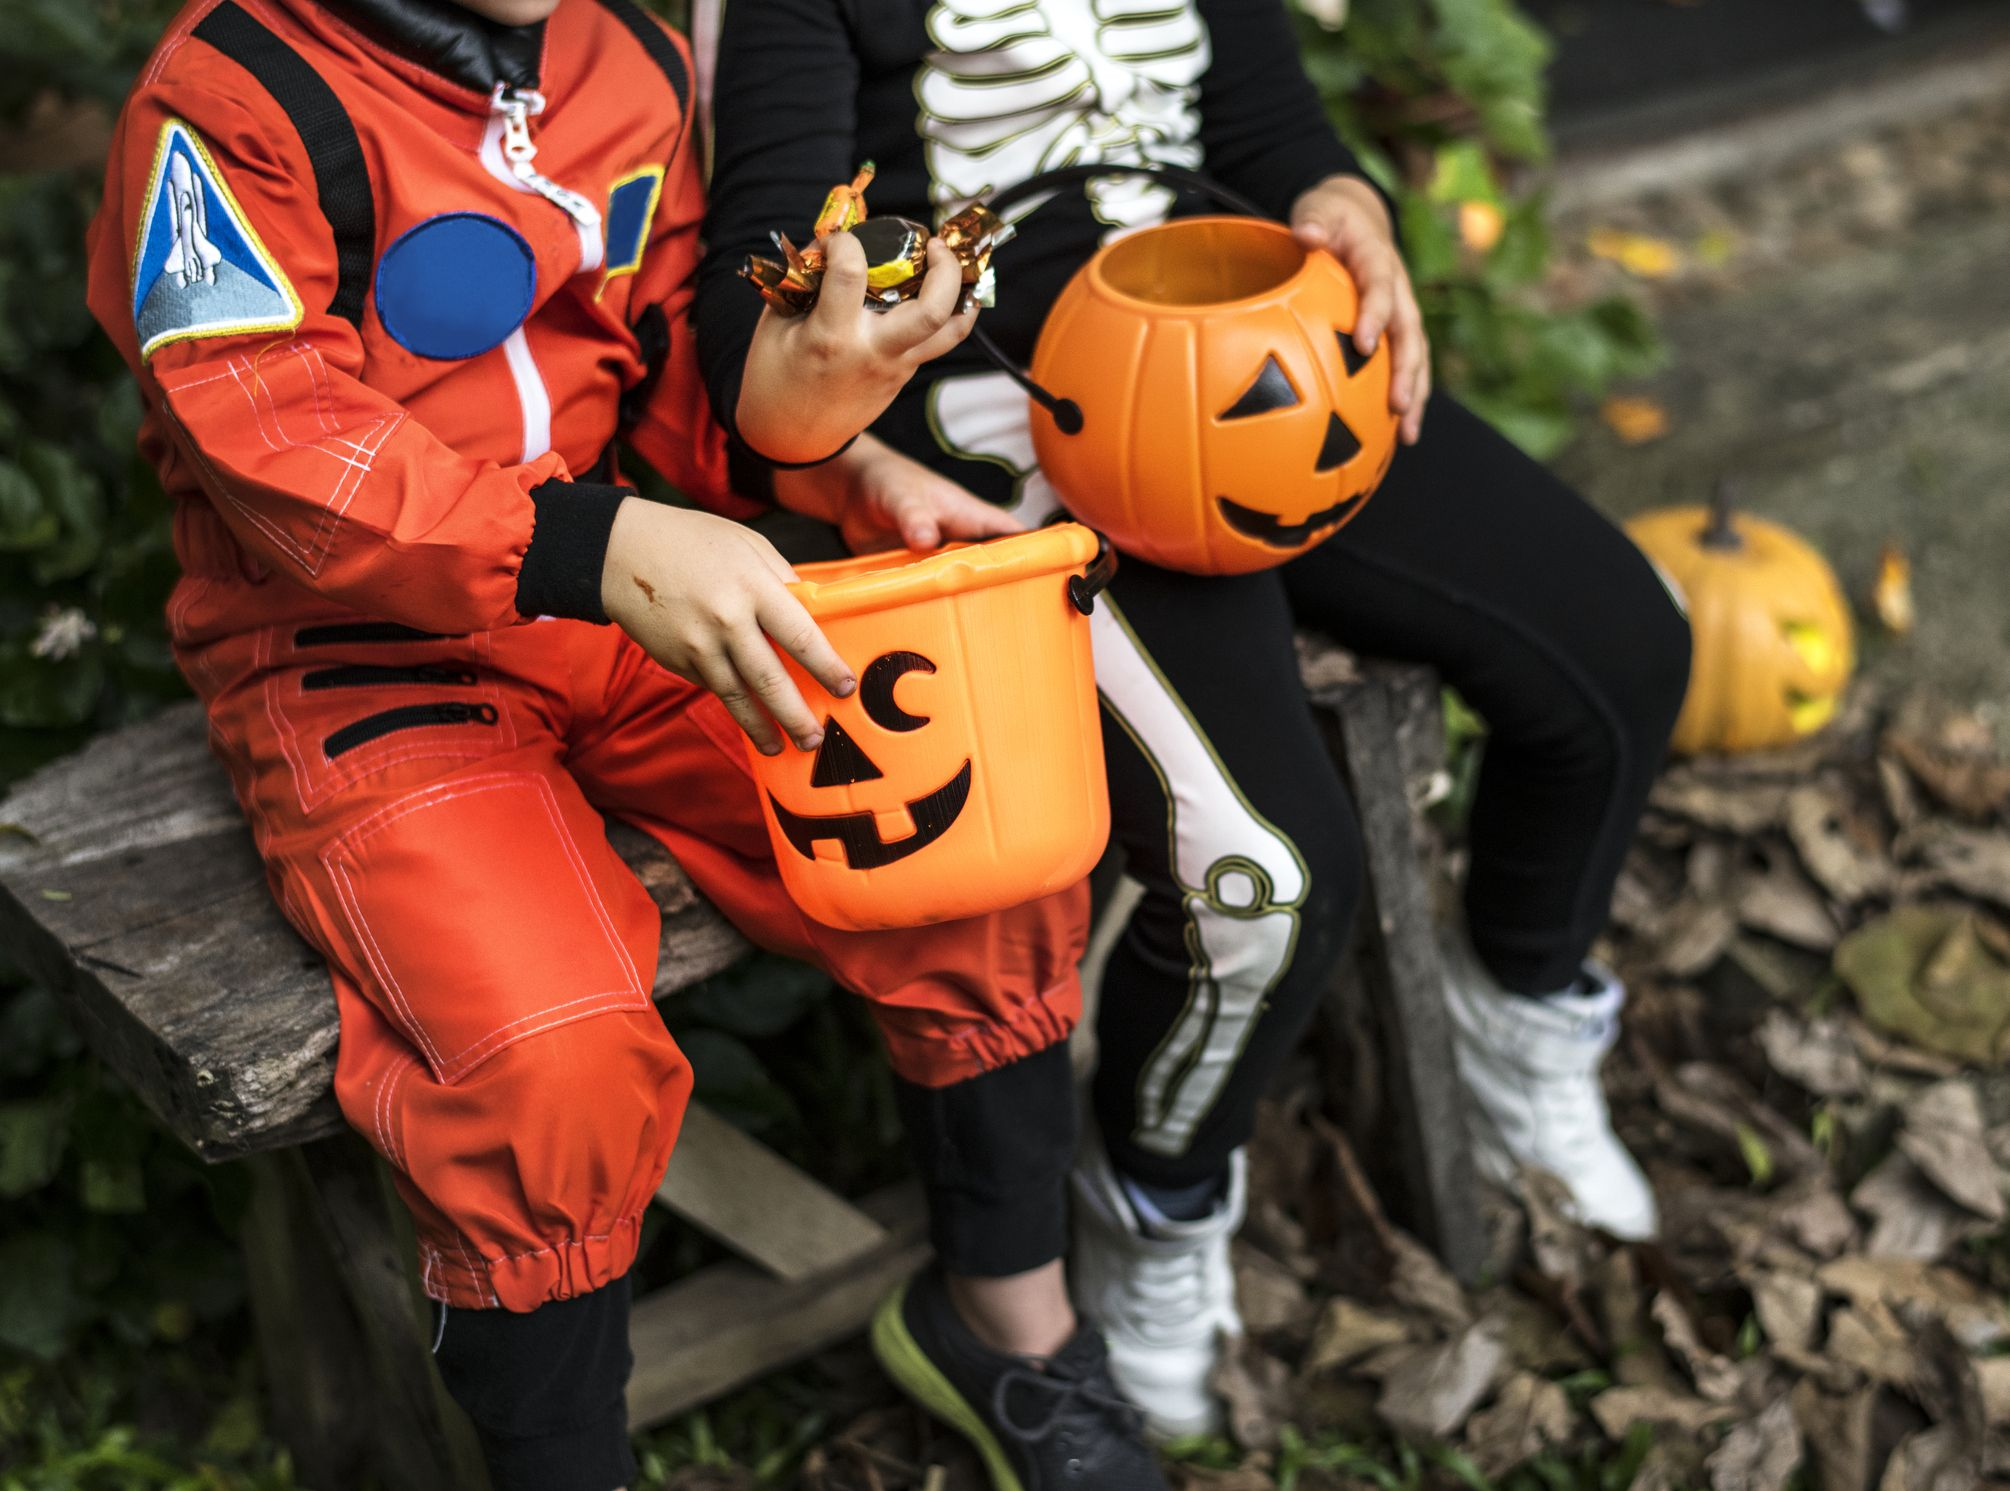 Trick Or Treat Hours 2020 What Time Does Trick Or Treating Start